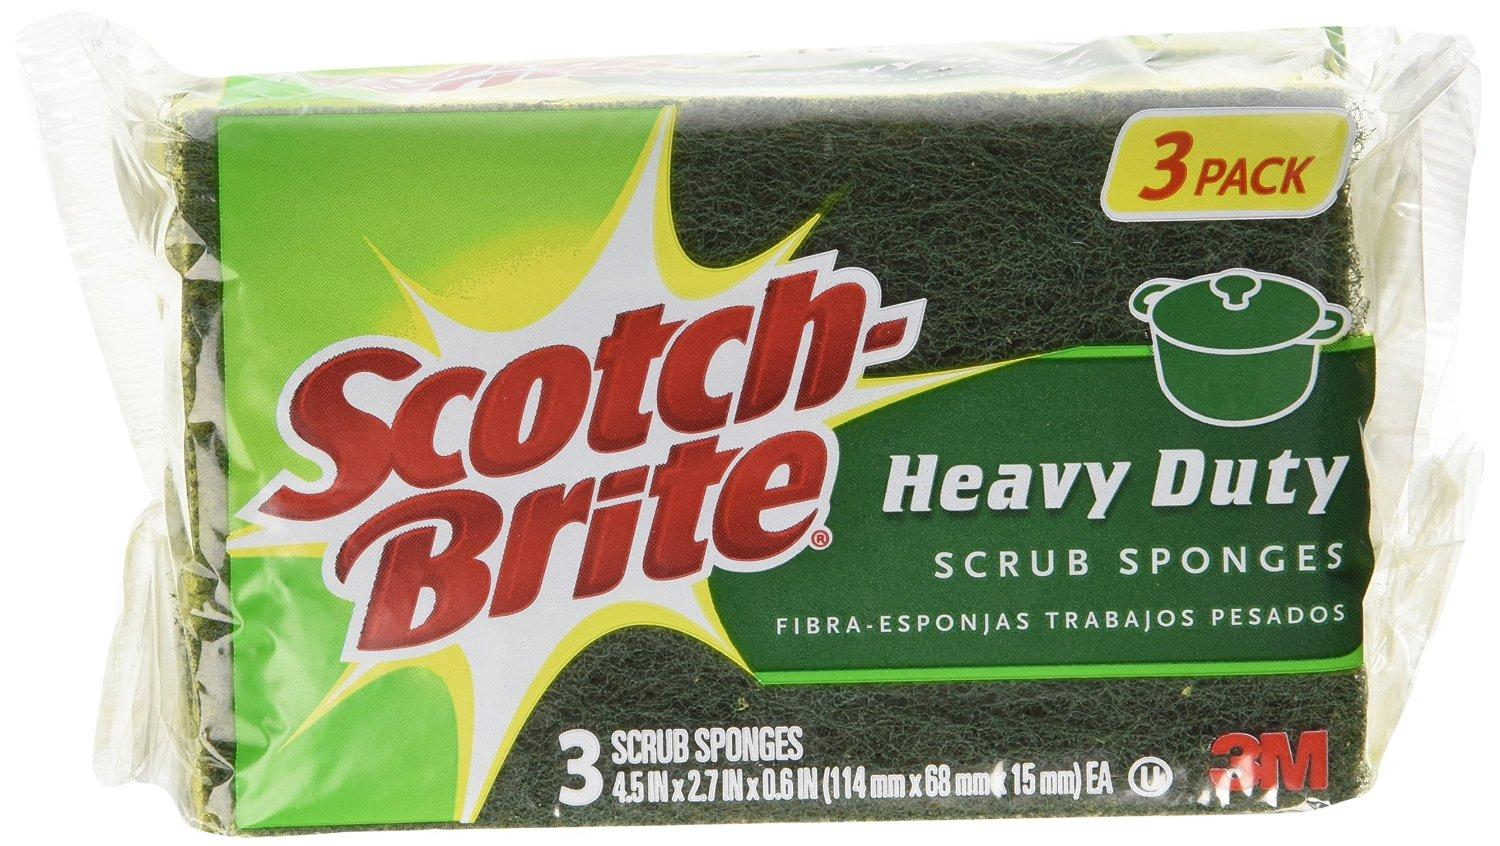 Scotch-Brite Scrub Sponge, Heavy Duty, 3-Count (Pack of 8)